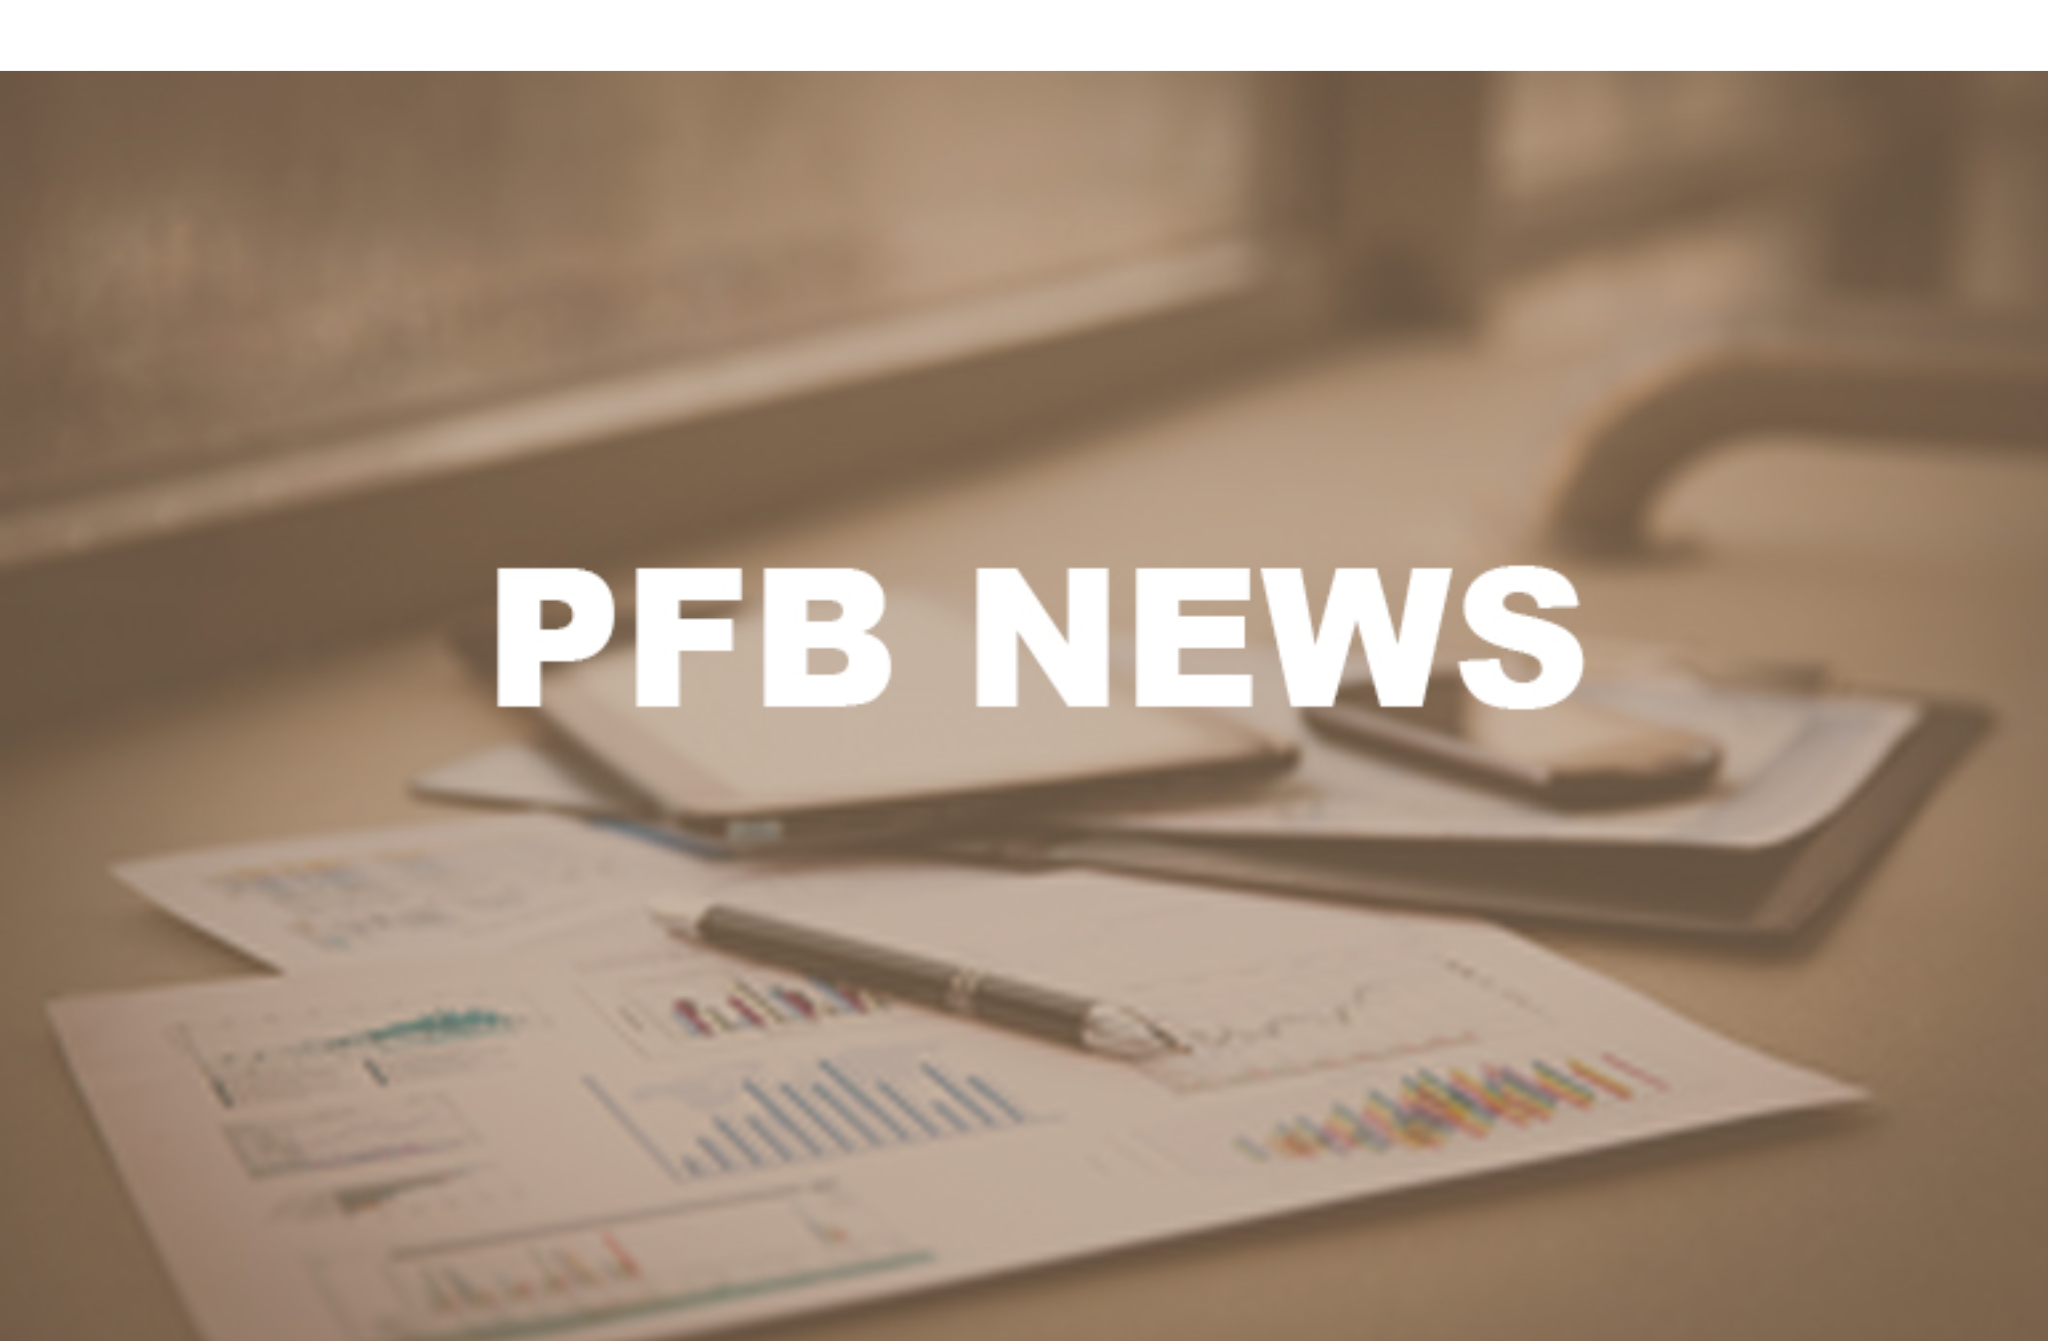 PFB New Releases